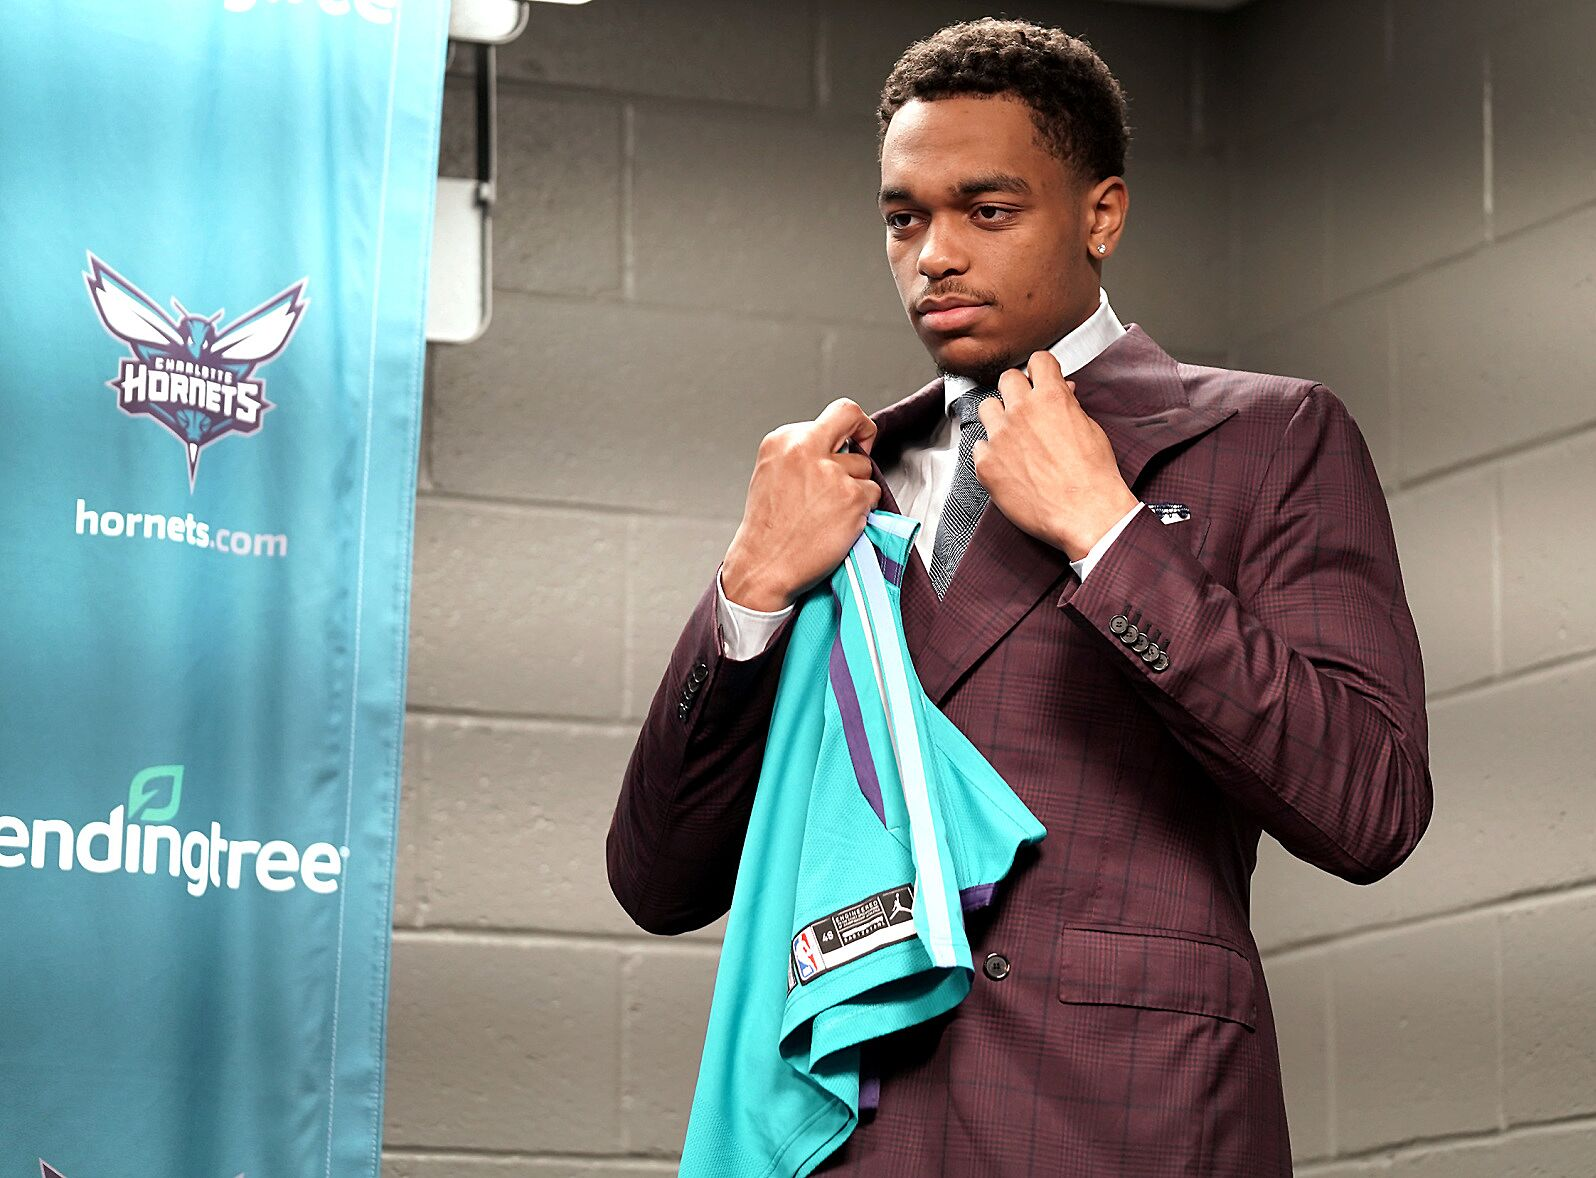 Charlotte Hornets 2019-20 Expectations: When will Washington crack the rotation?